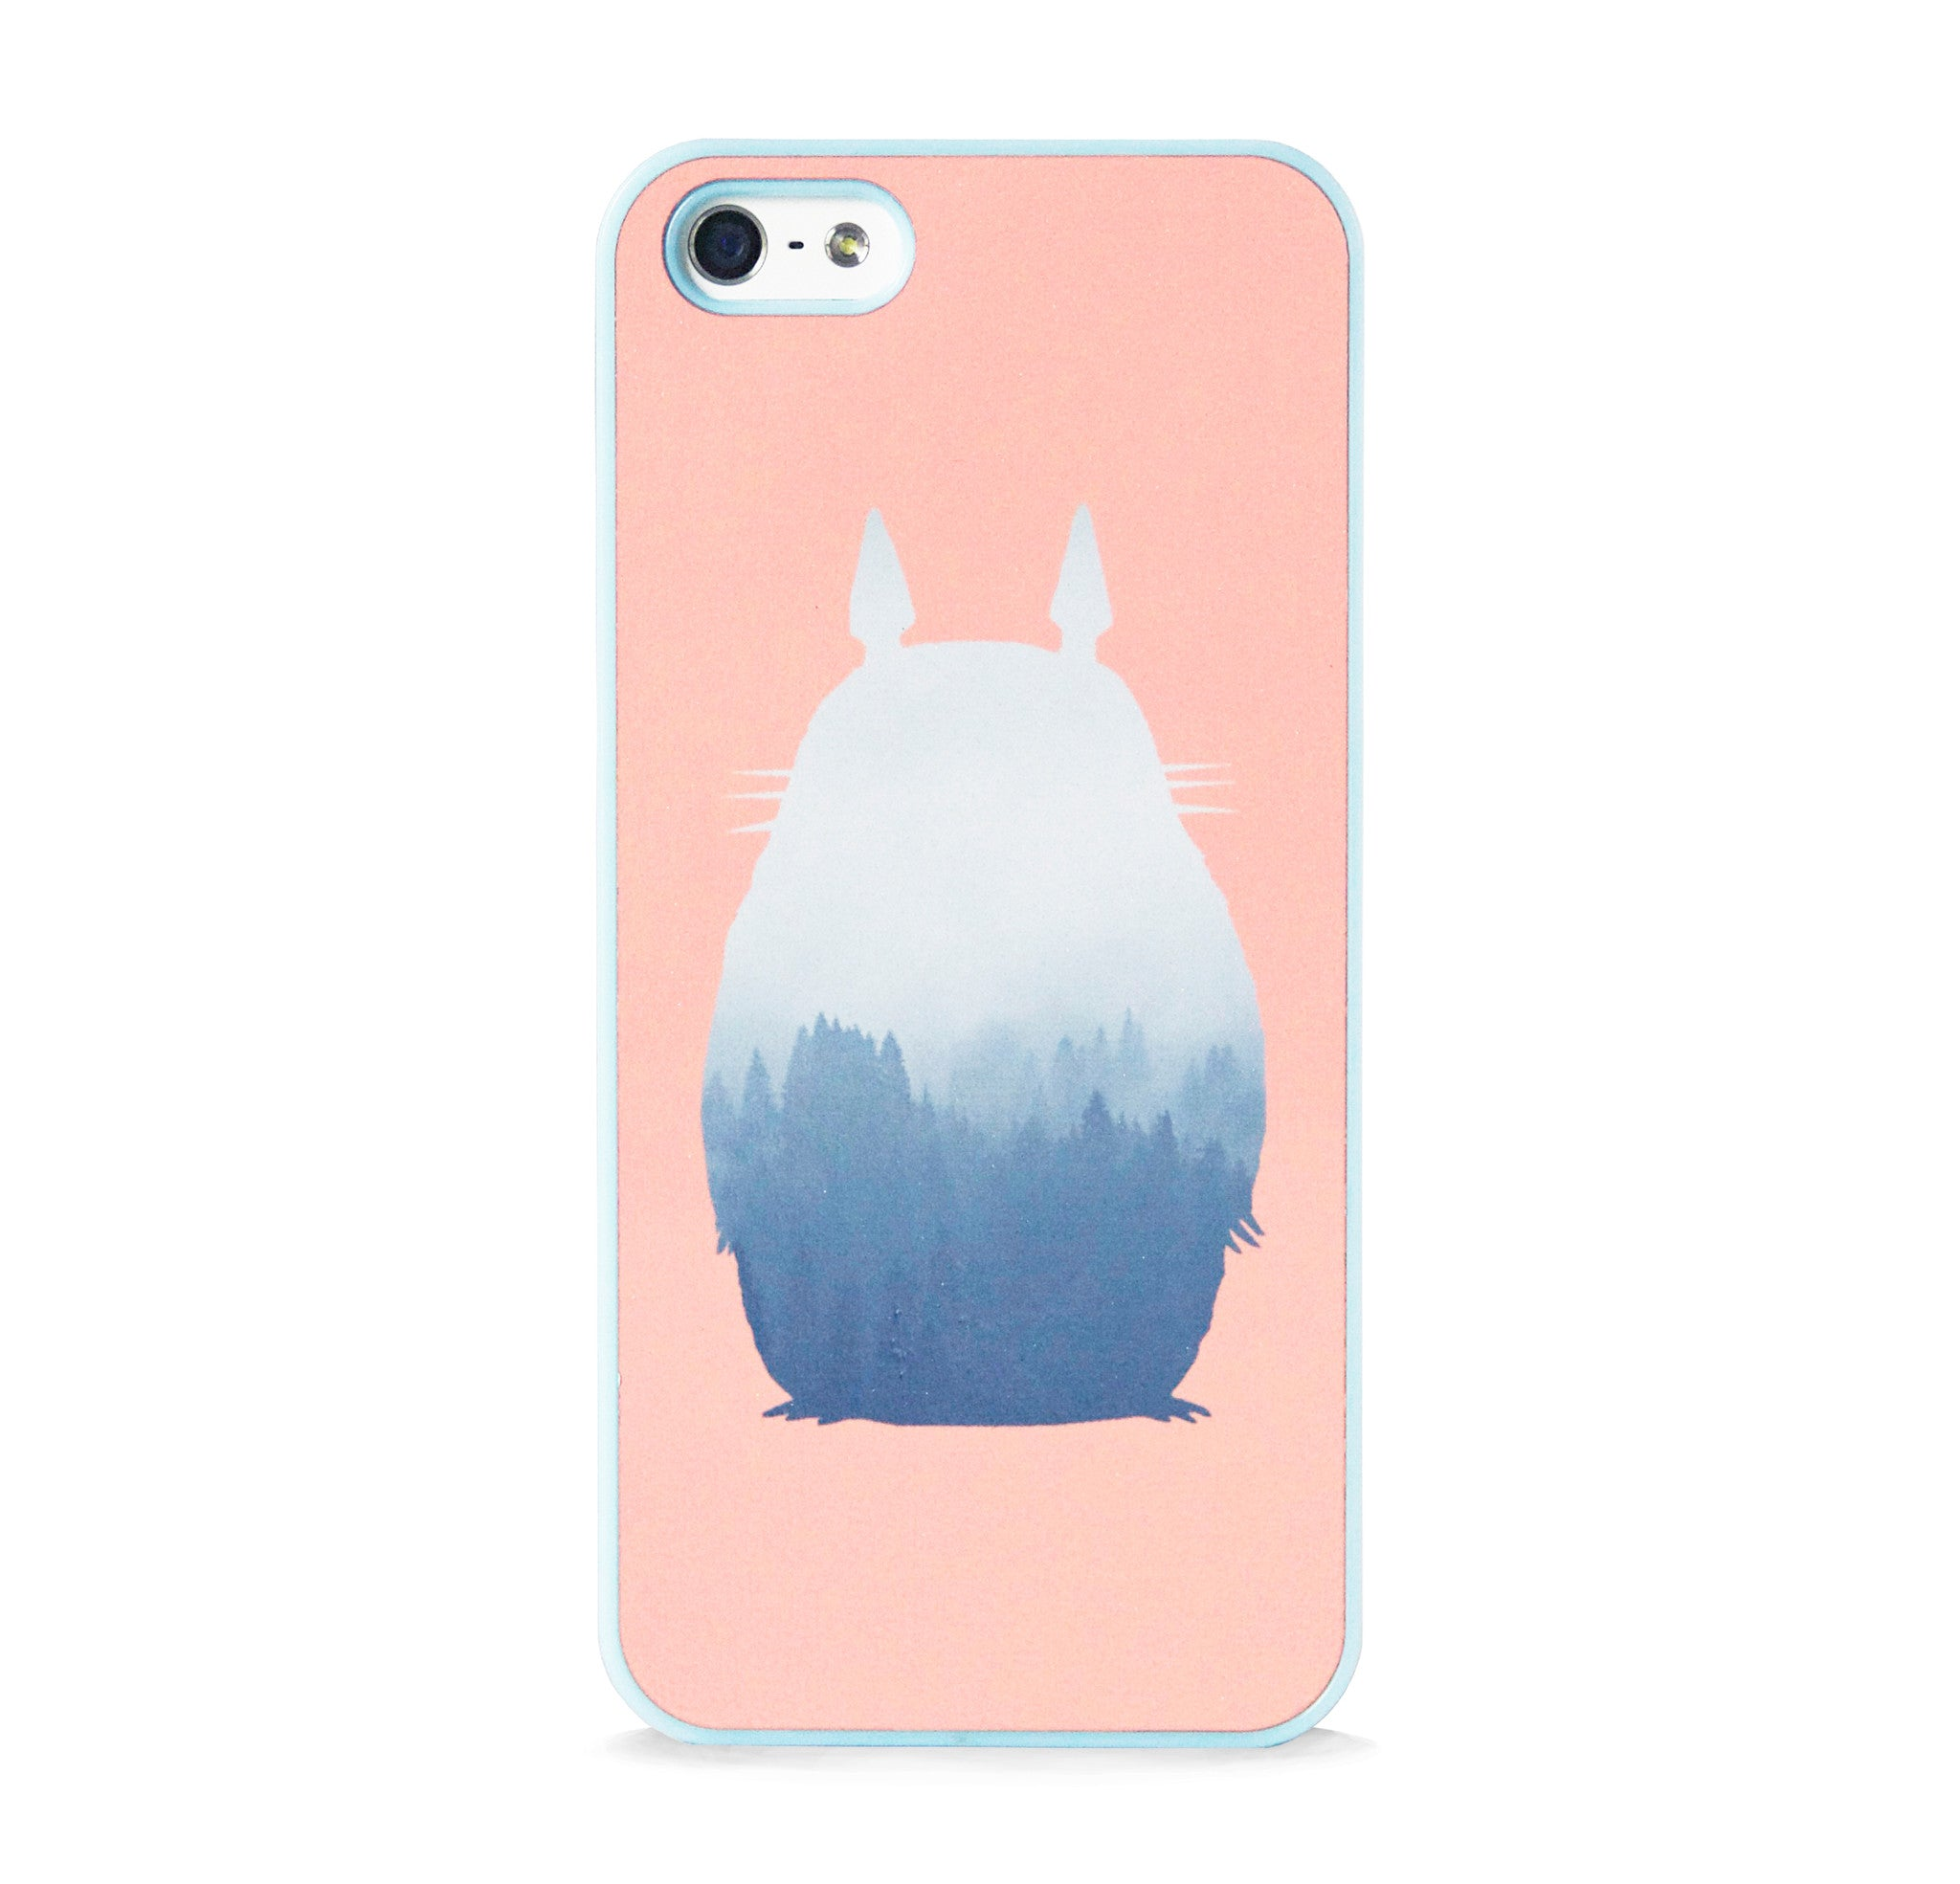 TOTORO ORANGE FOG IPHONE 5/5S CASE